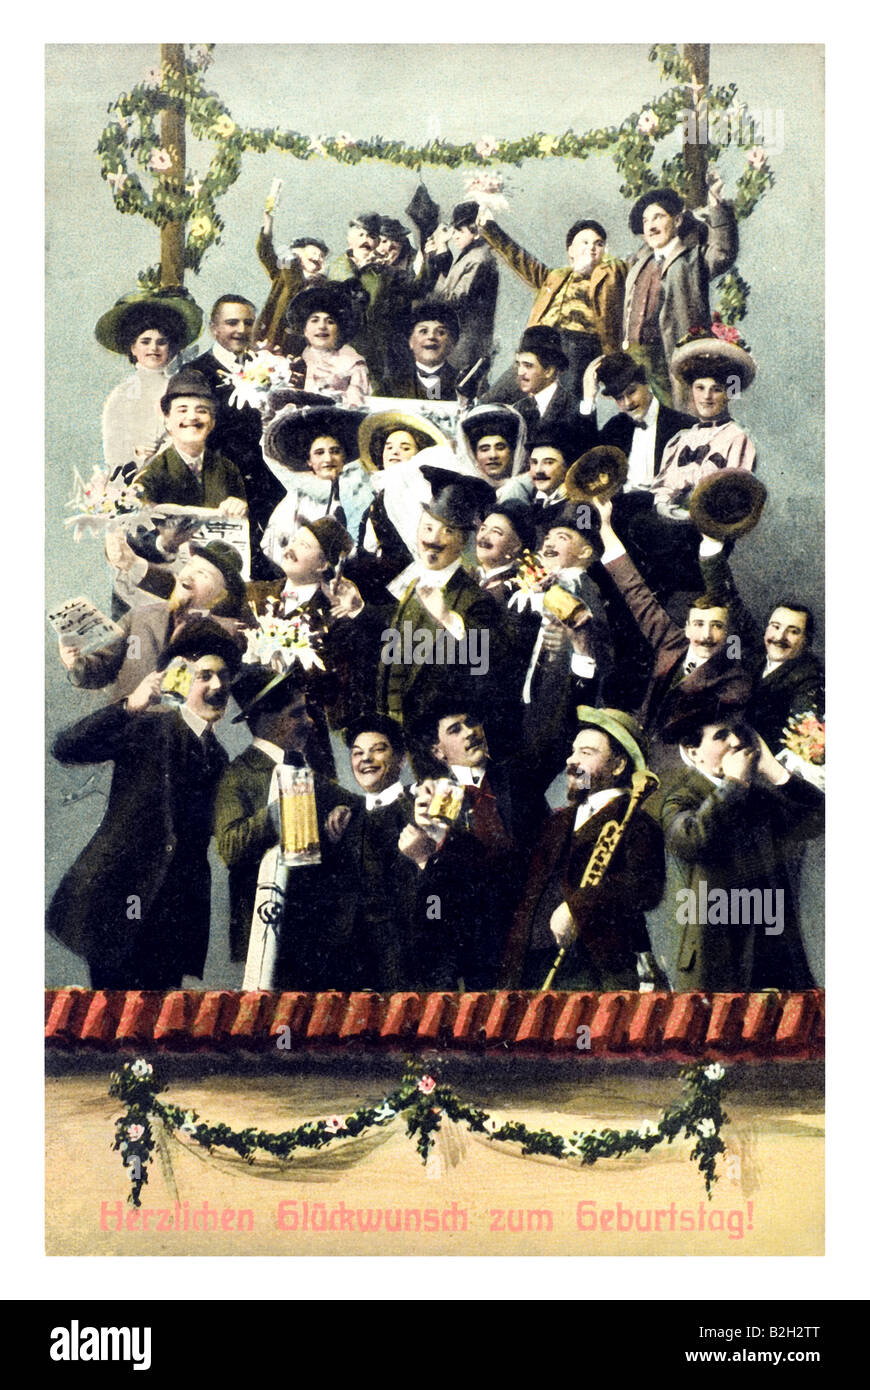 Postcard motive Prosit Bavarian party people with lots of beer 19th century Germany - Stock Image